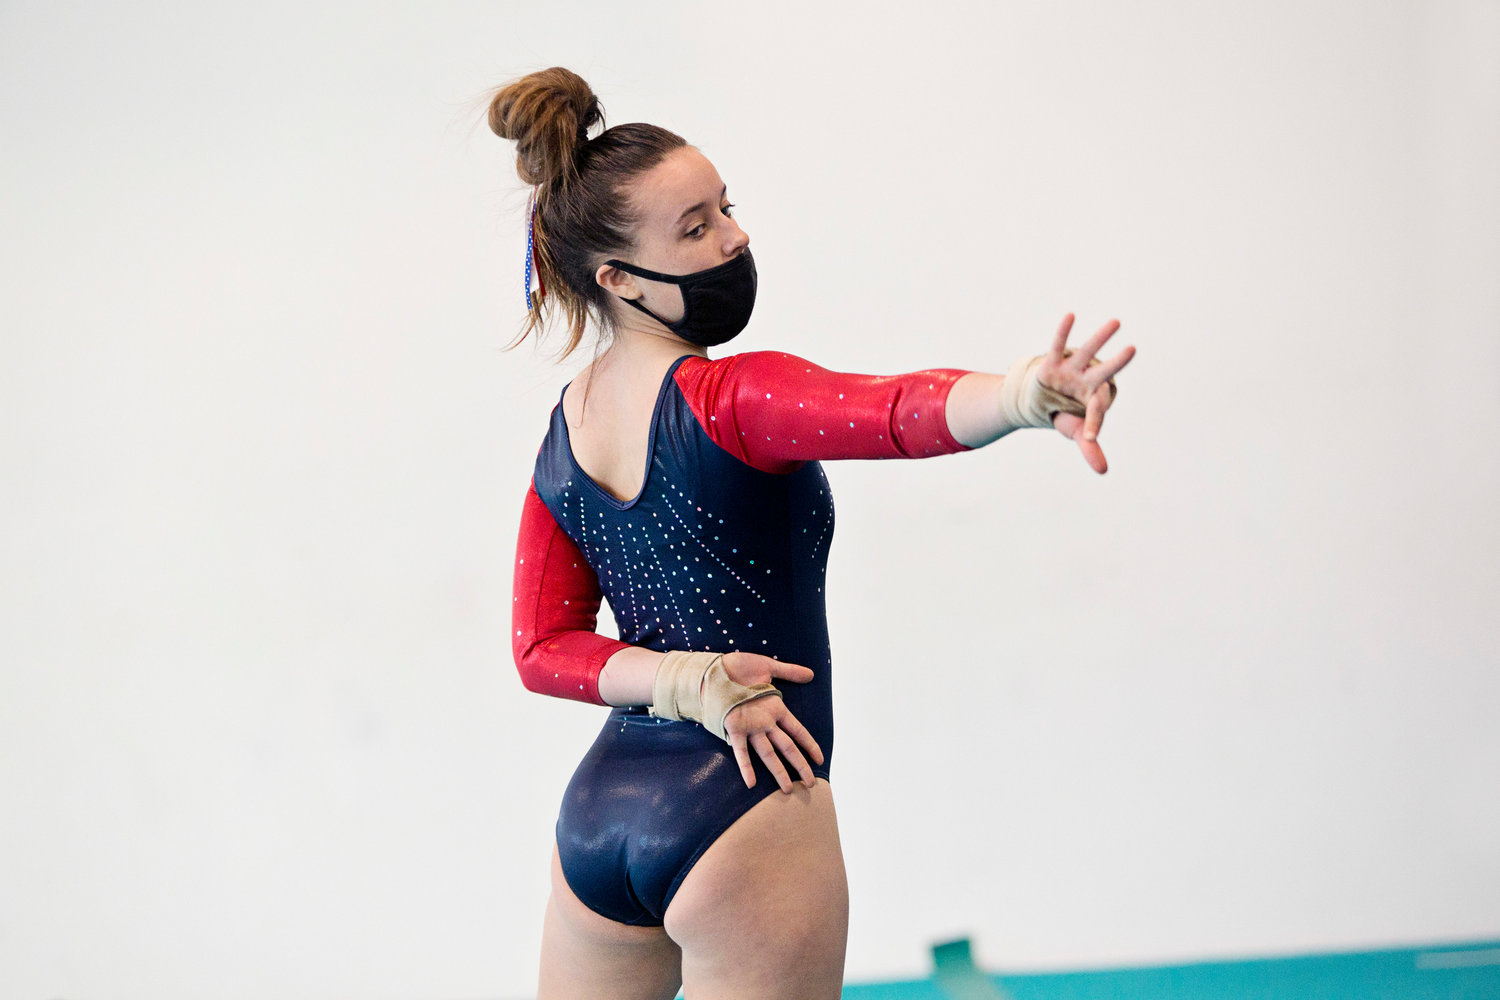 The Patriots' Fiona Daly earned a 7.75 score in the floor exercise.